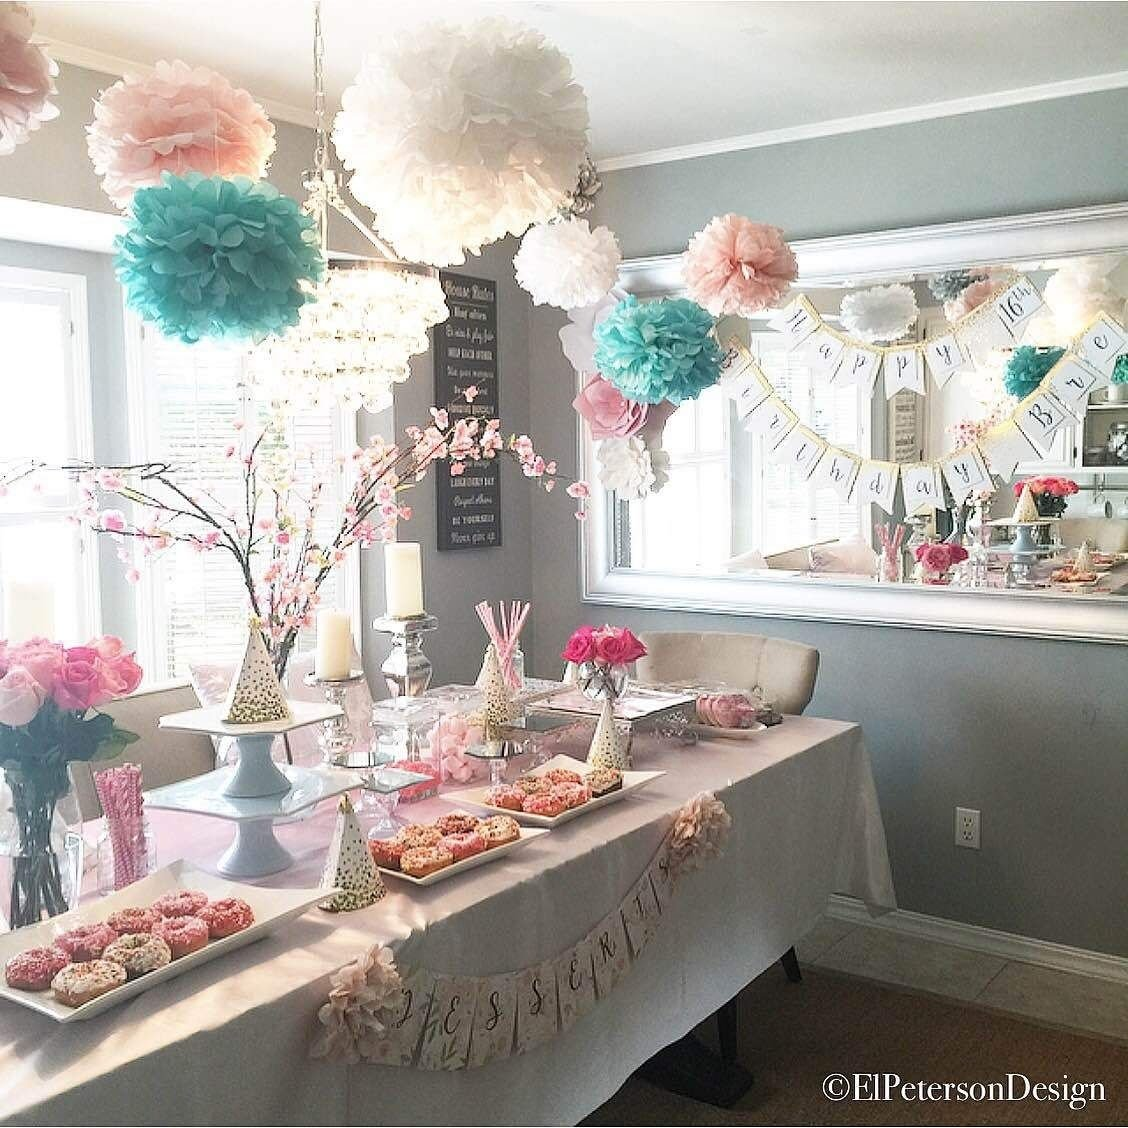 10 Nice 16 Year Old Birthday Party Ideas how to plan a teenage girls birthday party elpetersondesign party 2